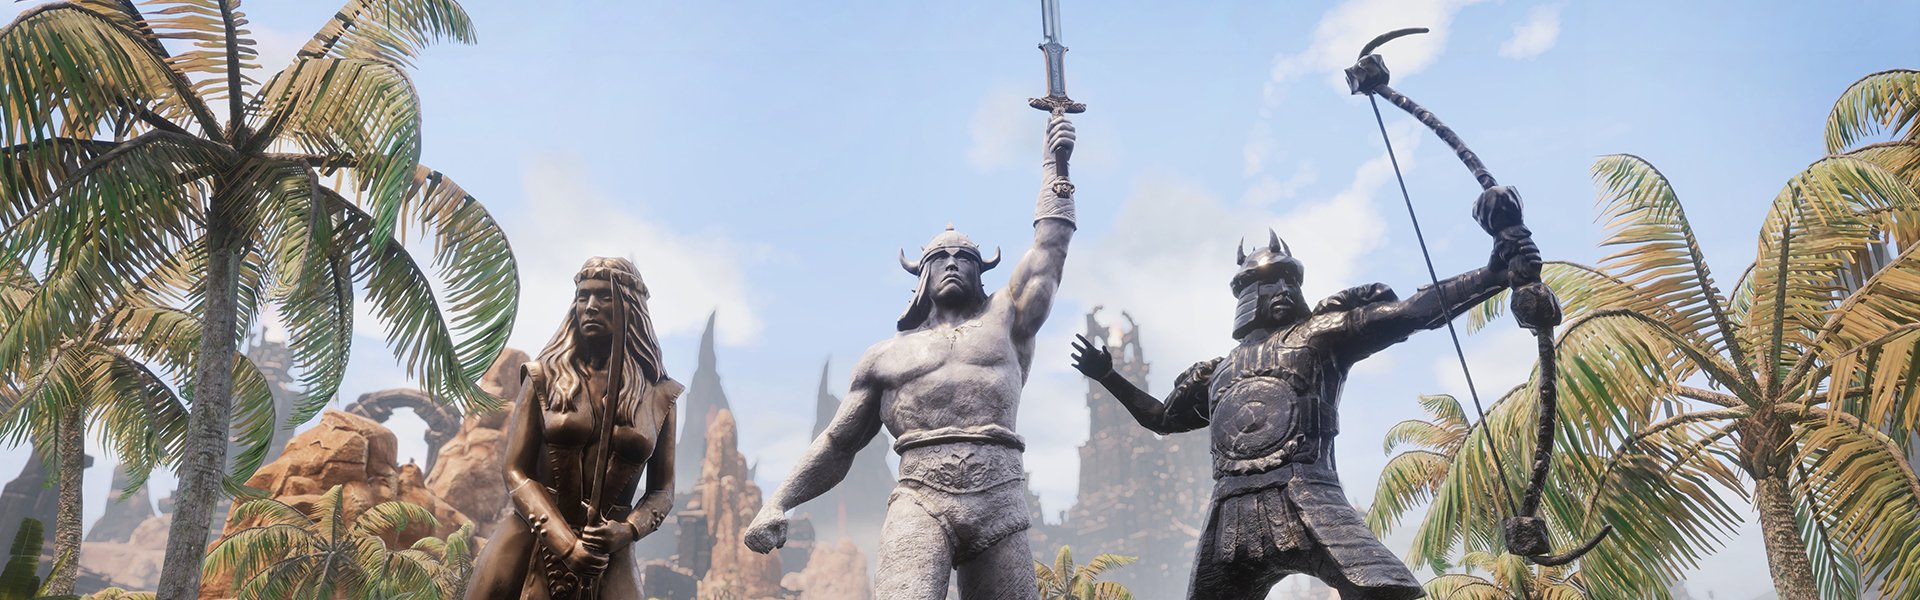 Conan Exiles - The Riddle of Steel (DLC) Steam Key GLOBAL